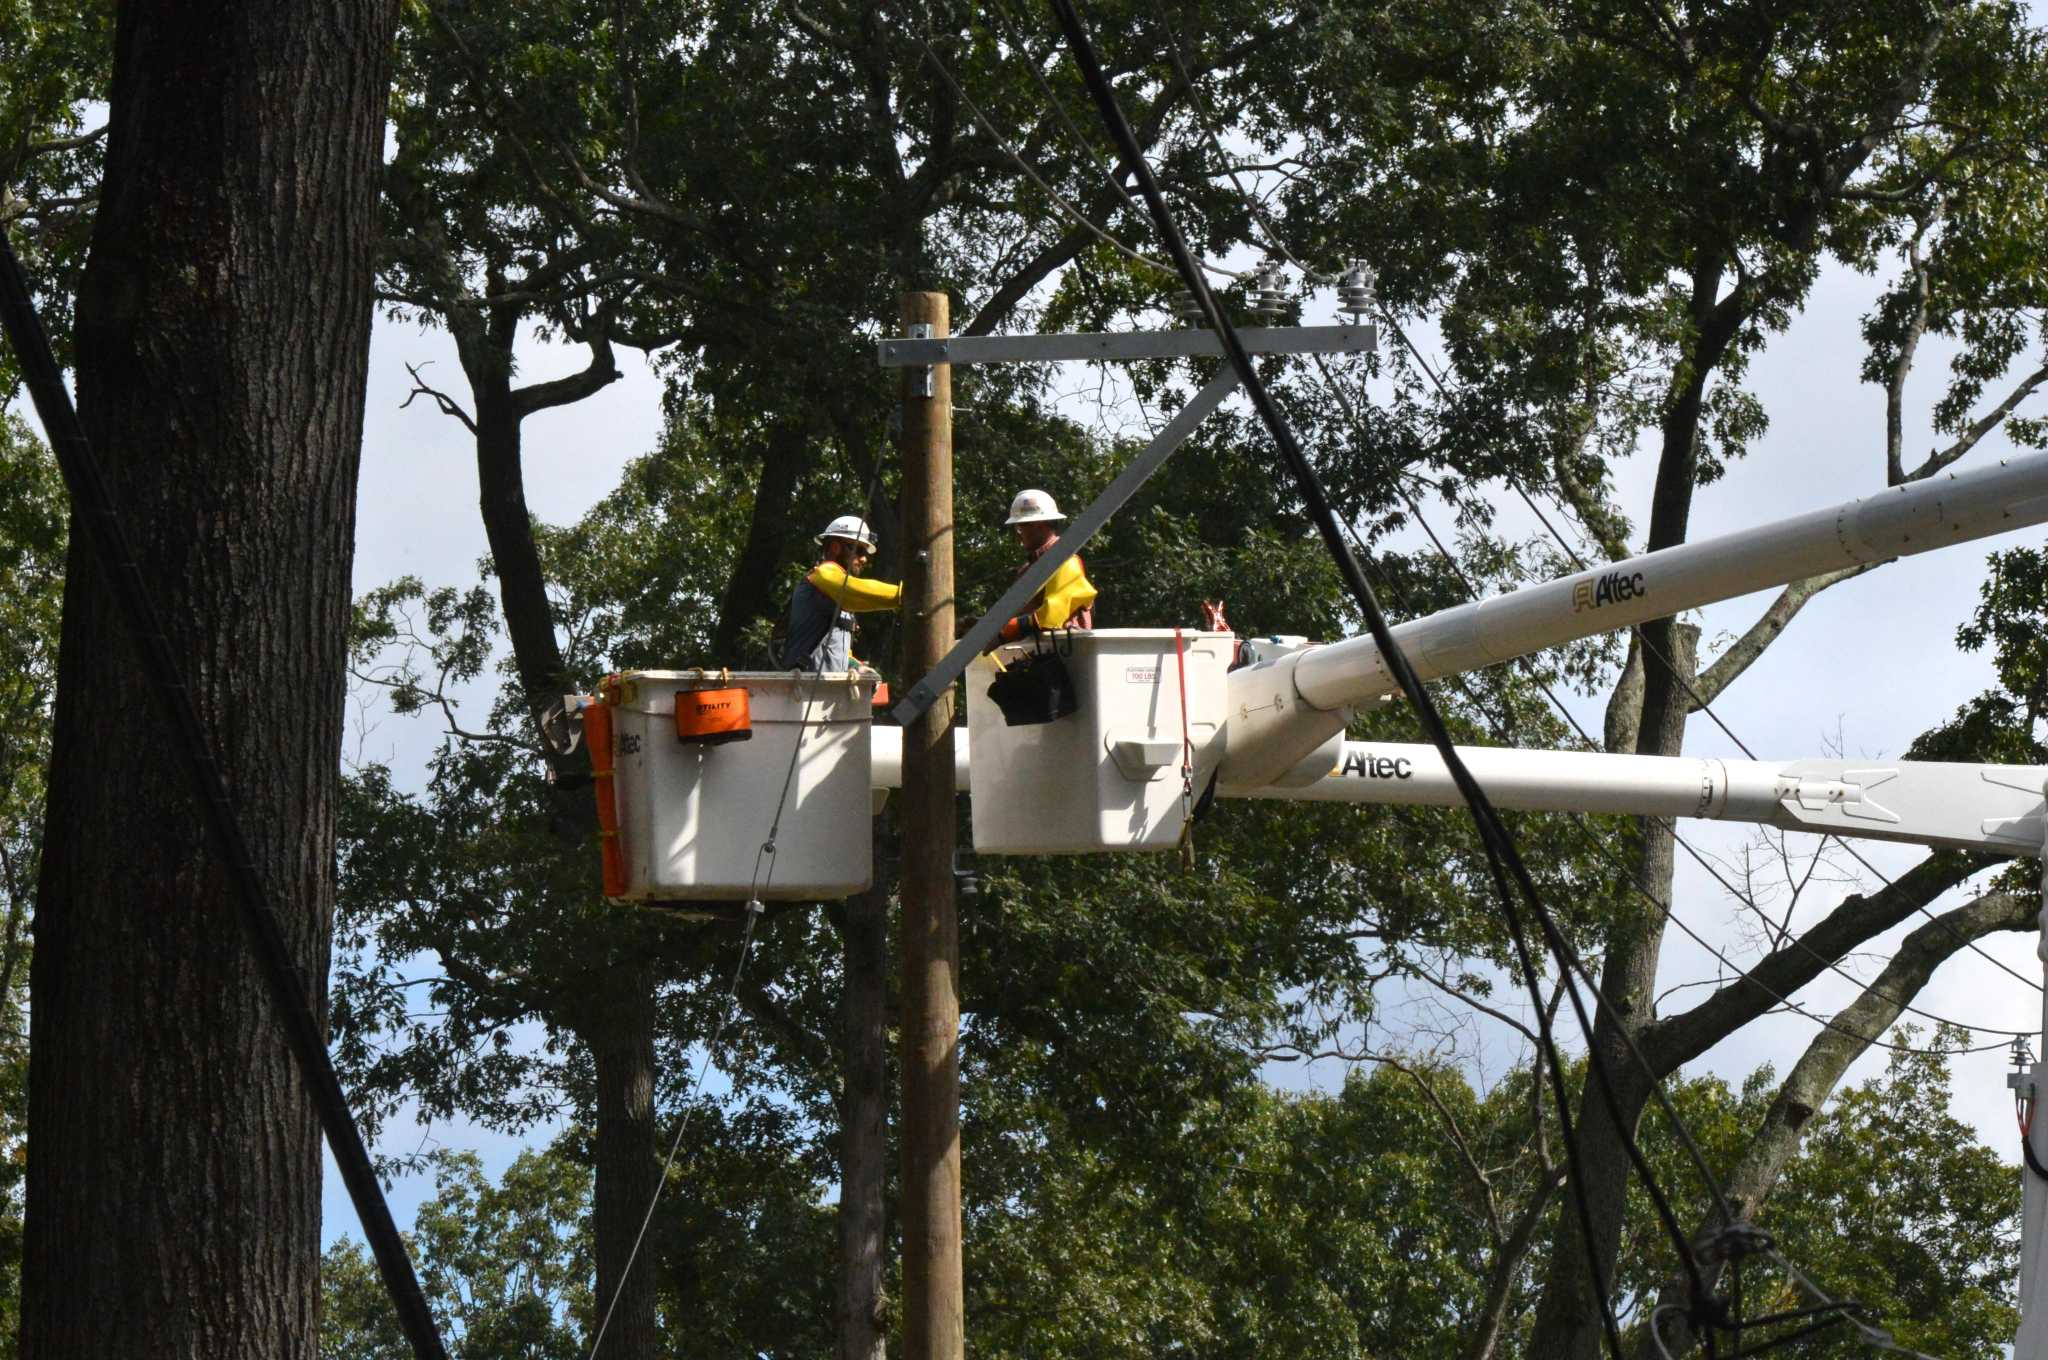 Connecticut OKs $141M in charges for storm recovery